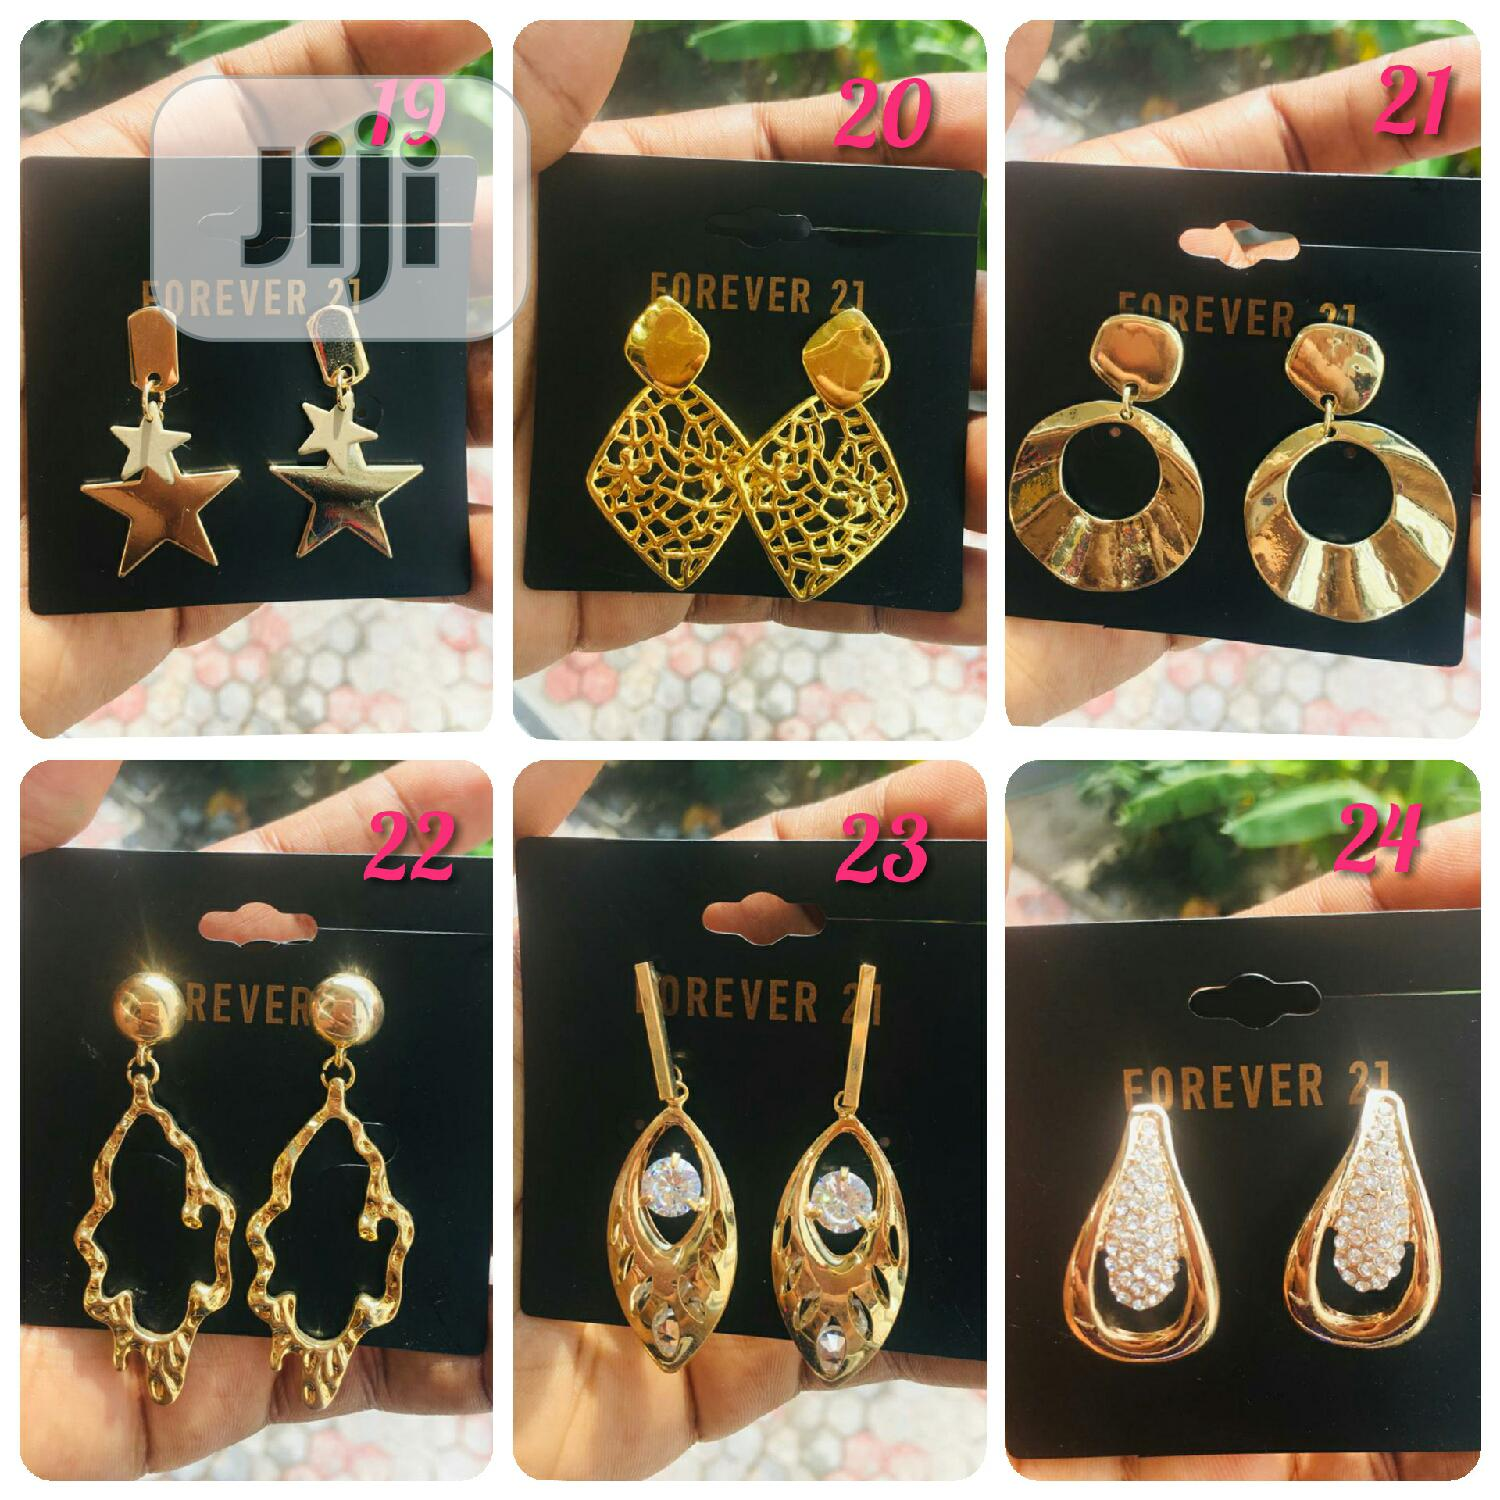 Tovivans Dressy Fashion Earrings | Jewelry for sale in Ikeja, Lagos State, Nigeria